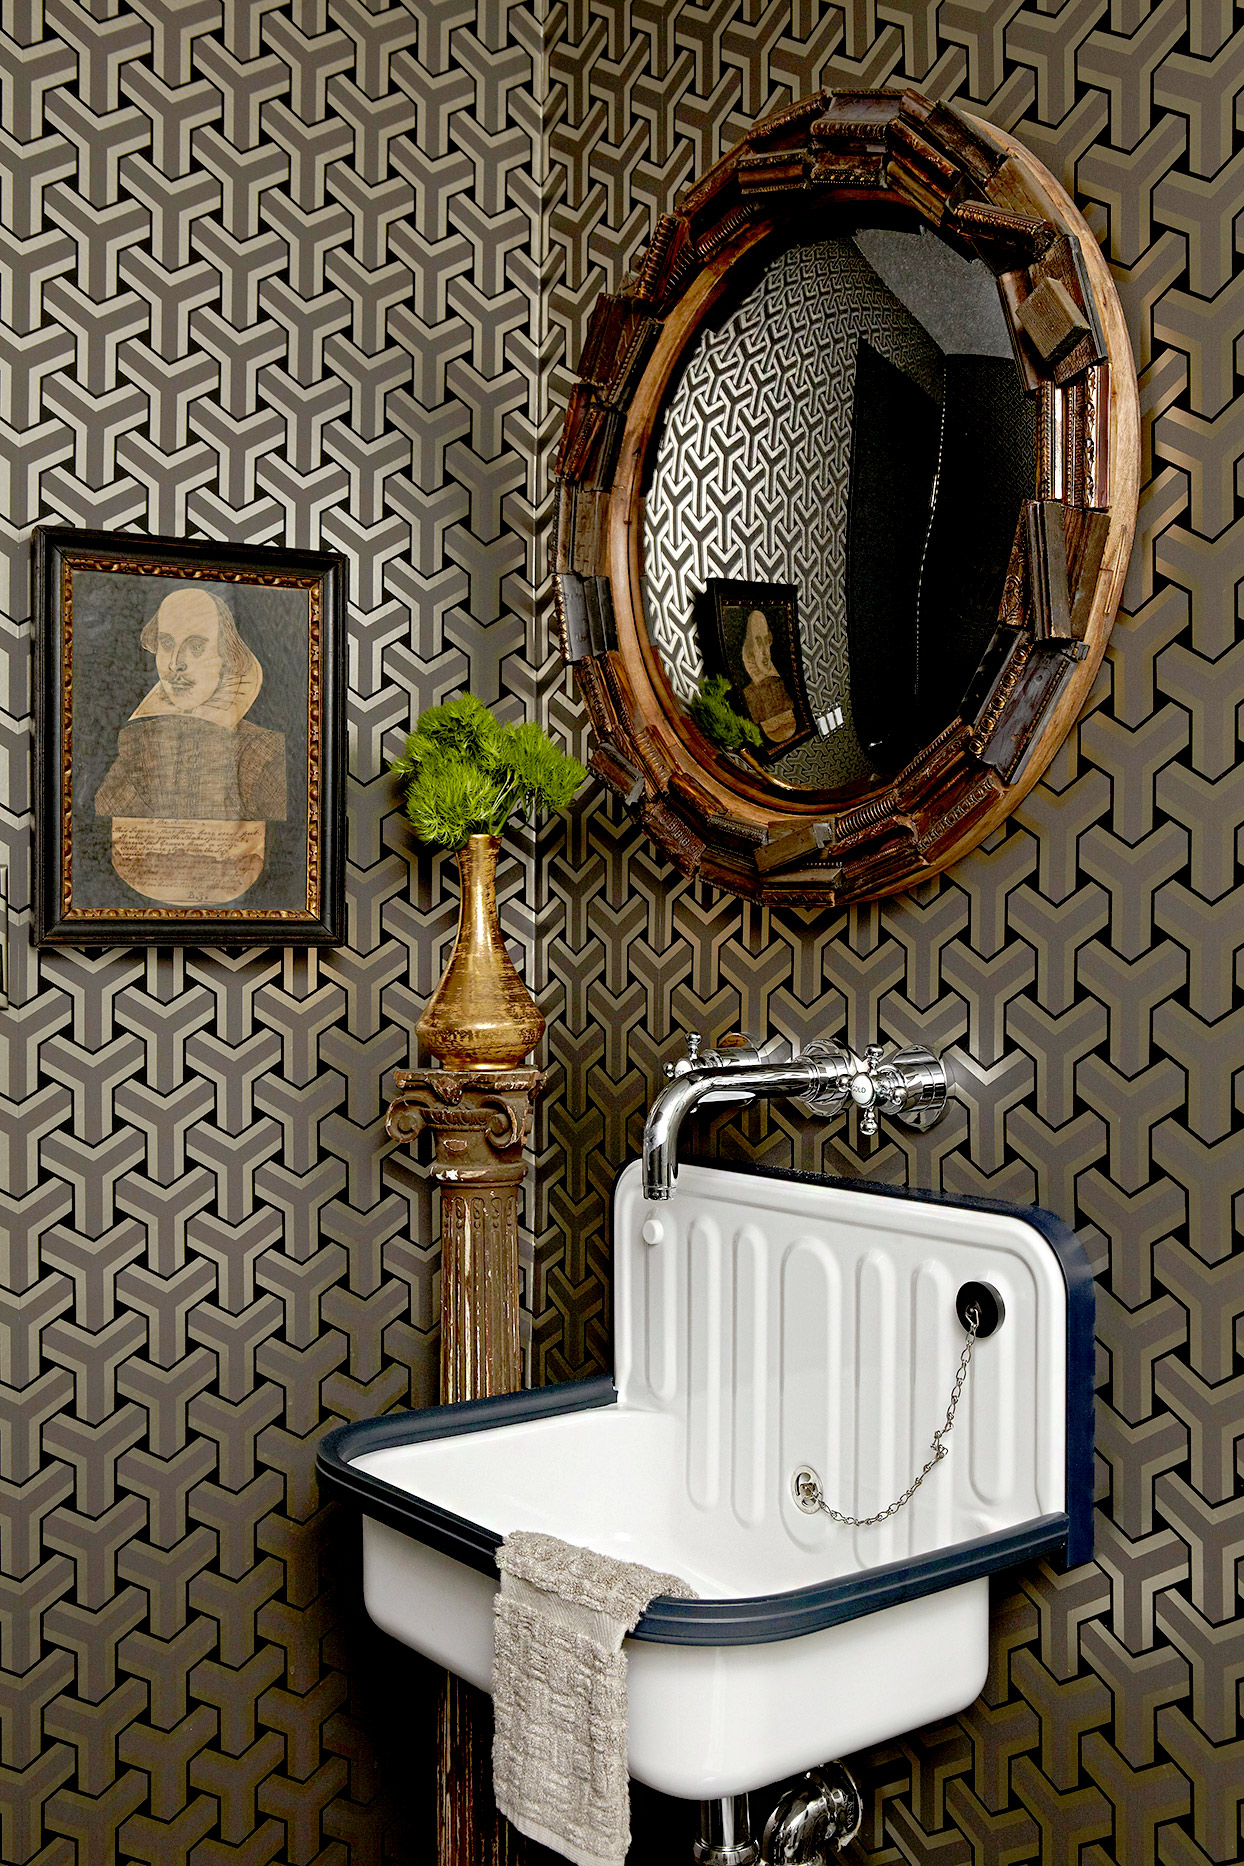 Bathroom with white sink, portrait, and mirror